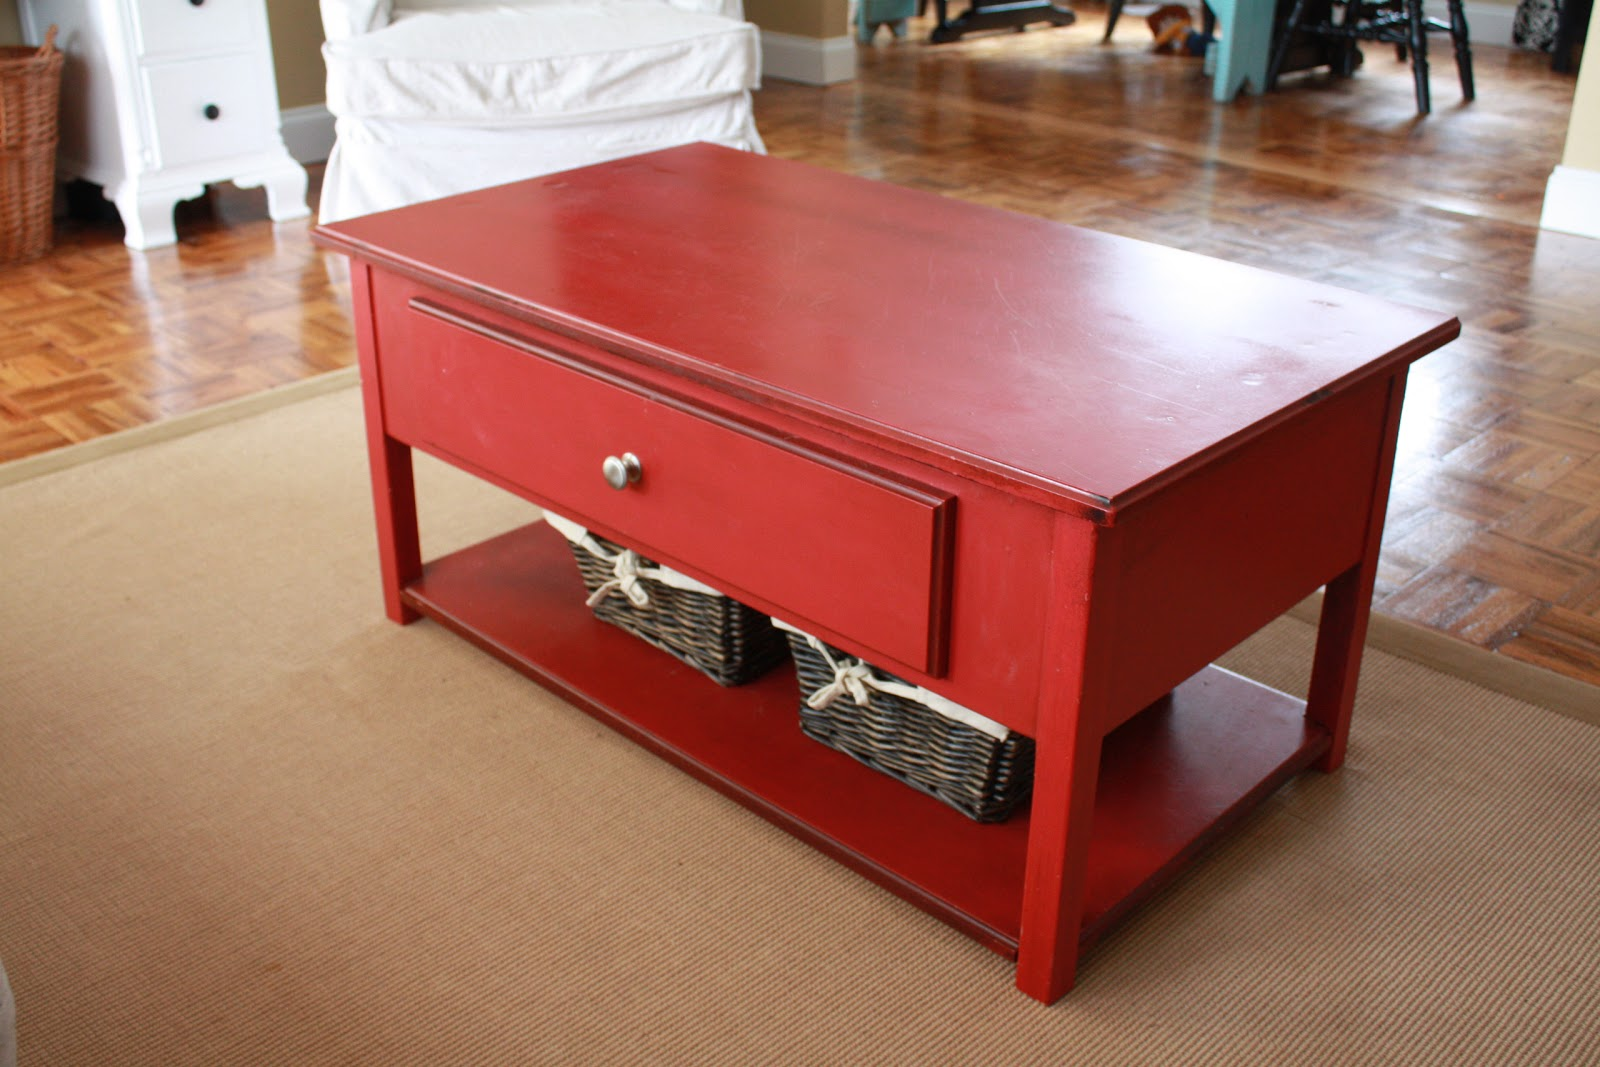 Couchtisch Rot It 39s Just Laine The Amazing Red Coffee Table